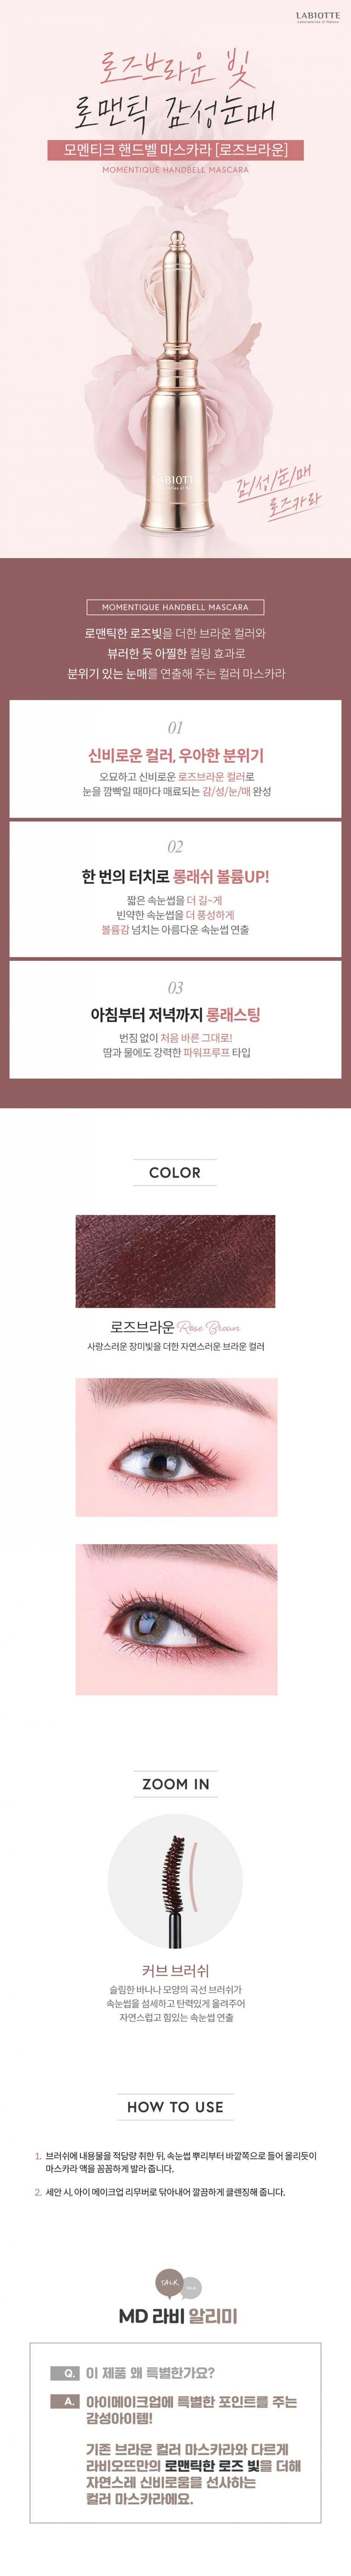 LABIOTTE MOMENTIQUE HANDBELL MASCARA [ROSE BROWN]